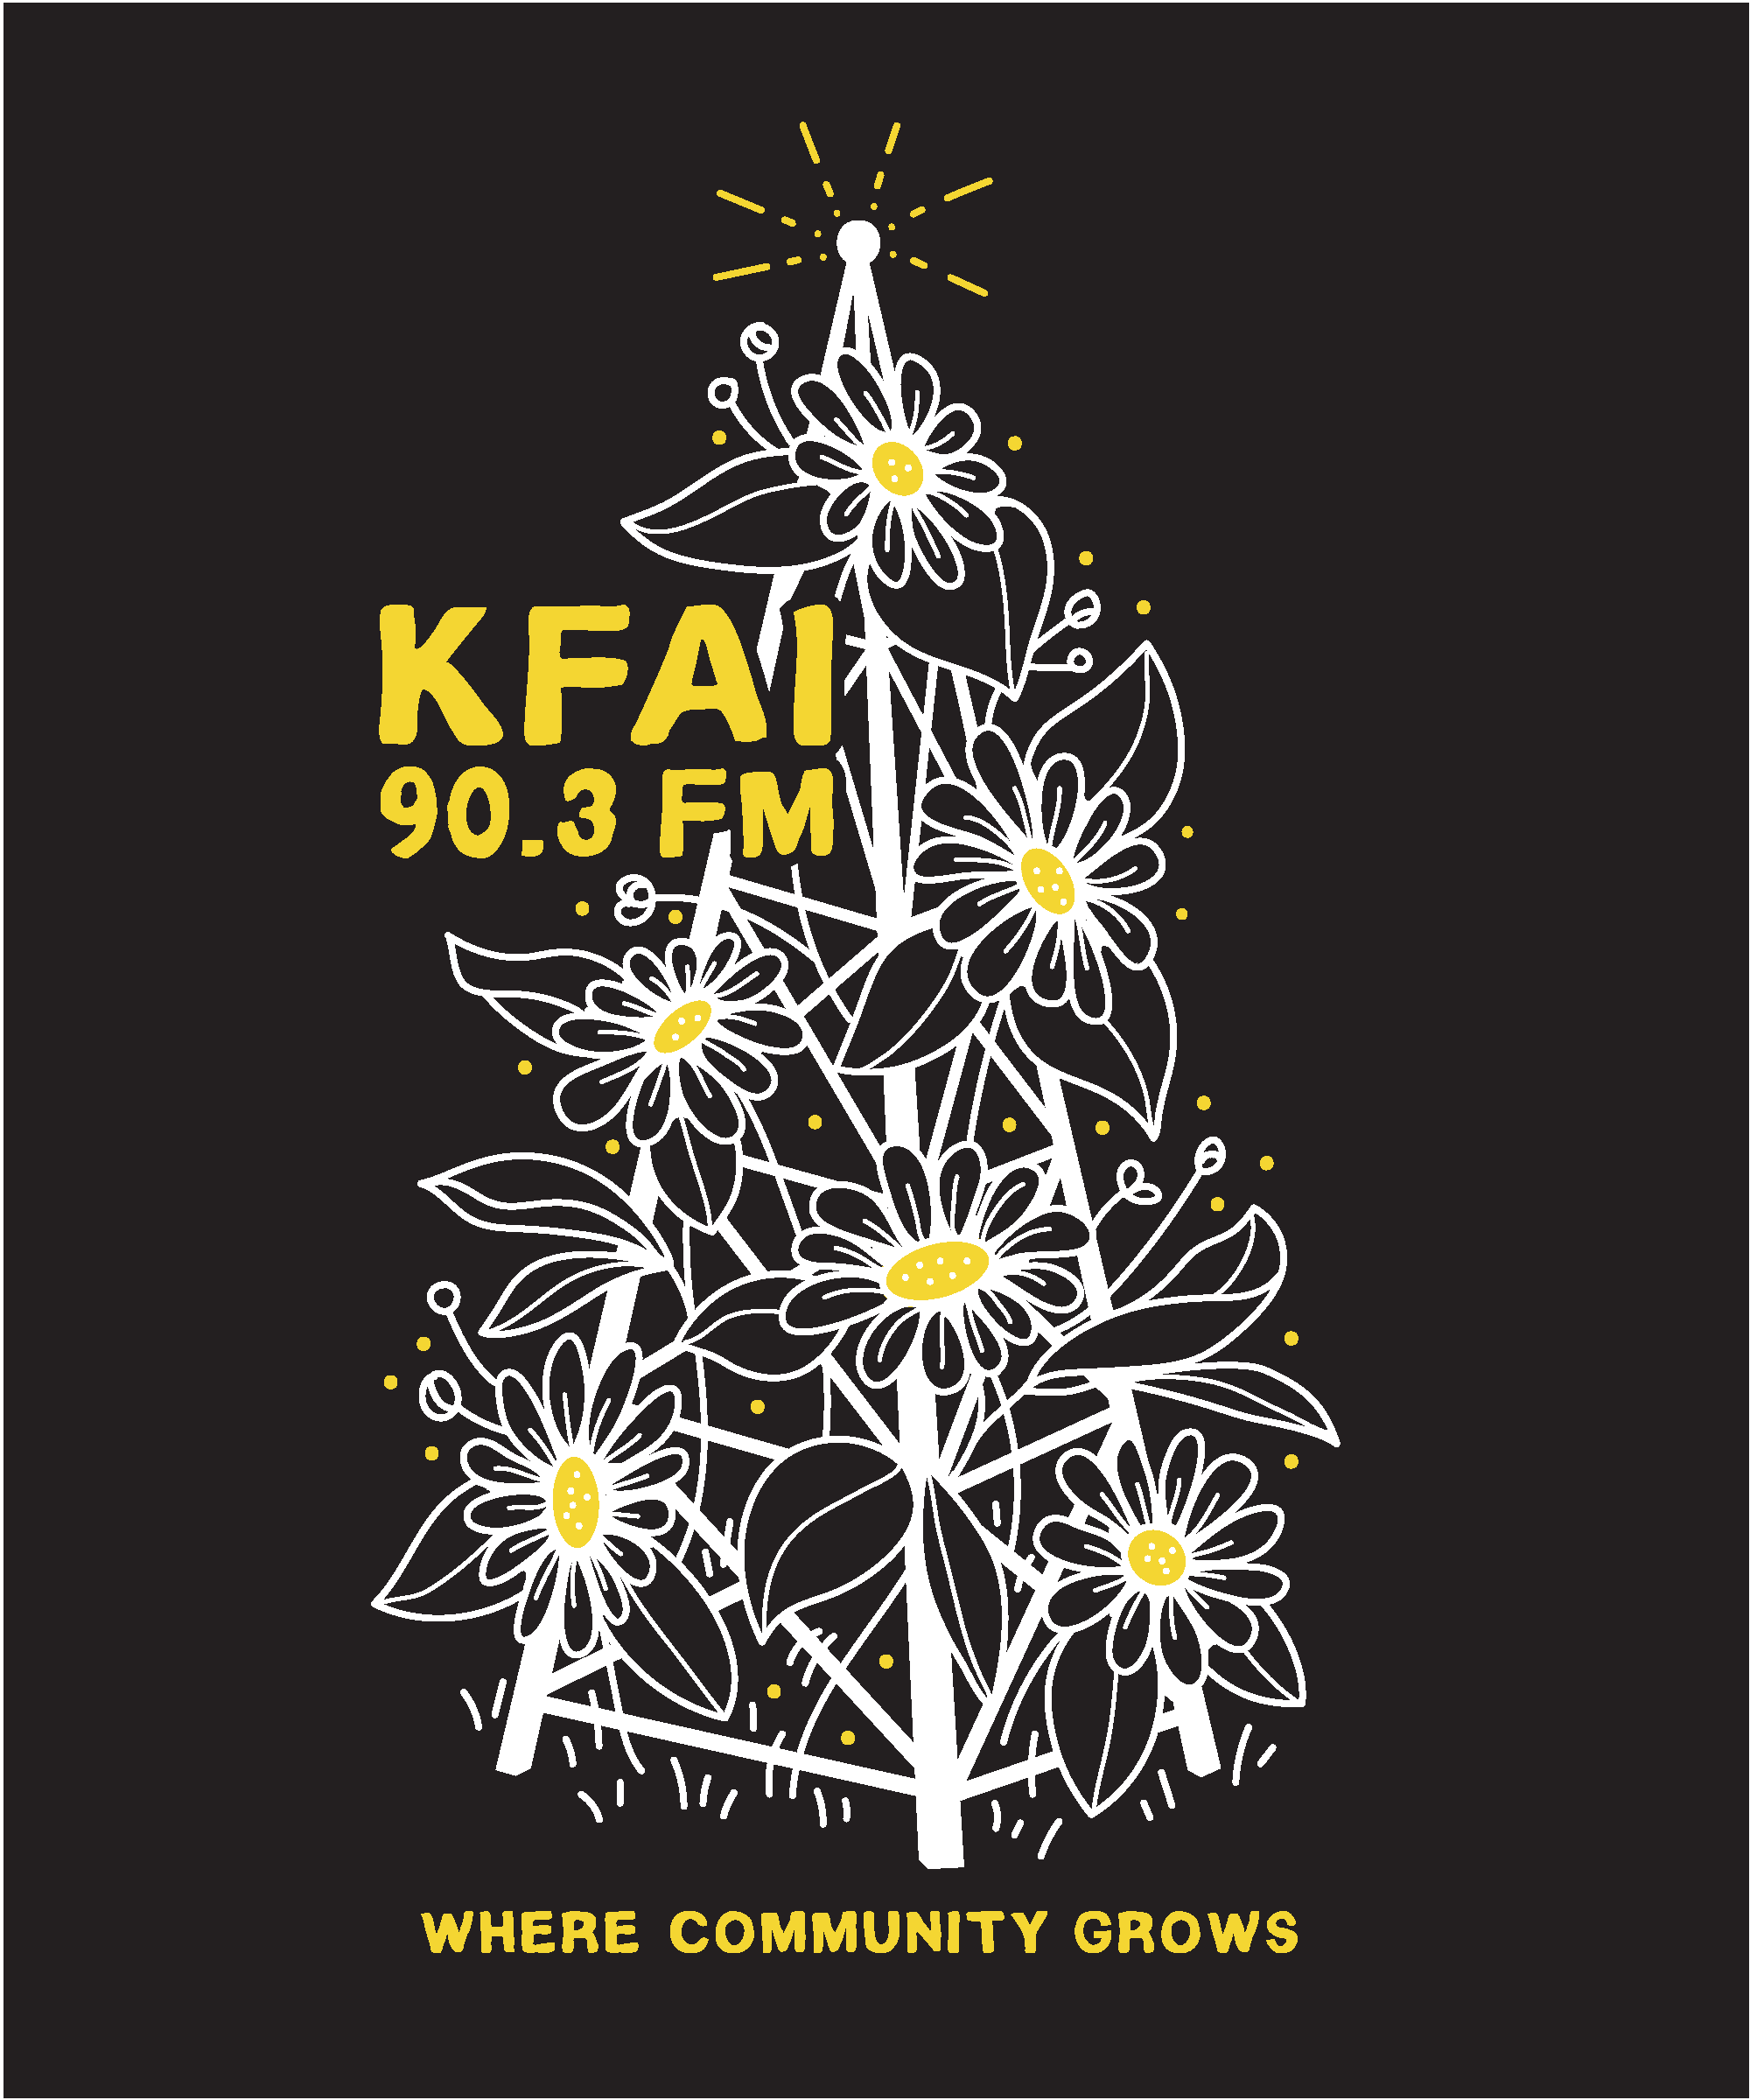 KFAI Board of Directors Meeting Notice and Agenda for Monday, March 22, 2021